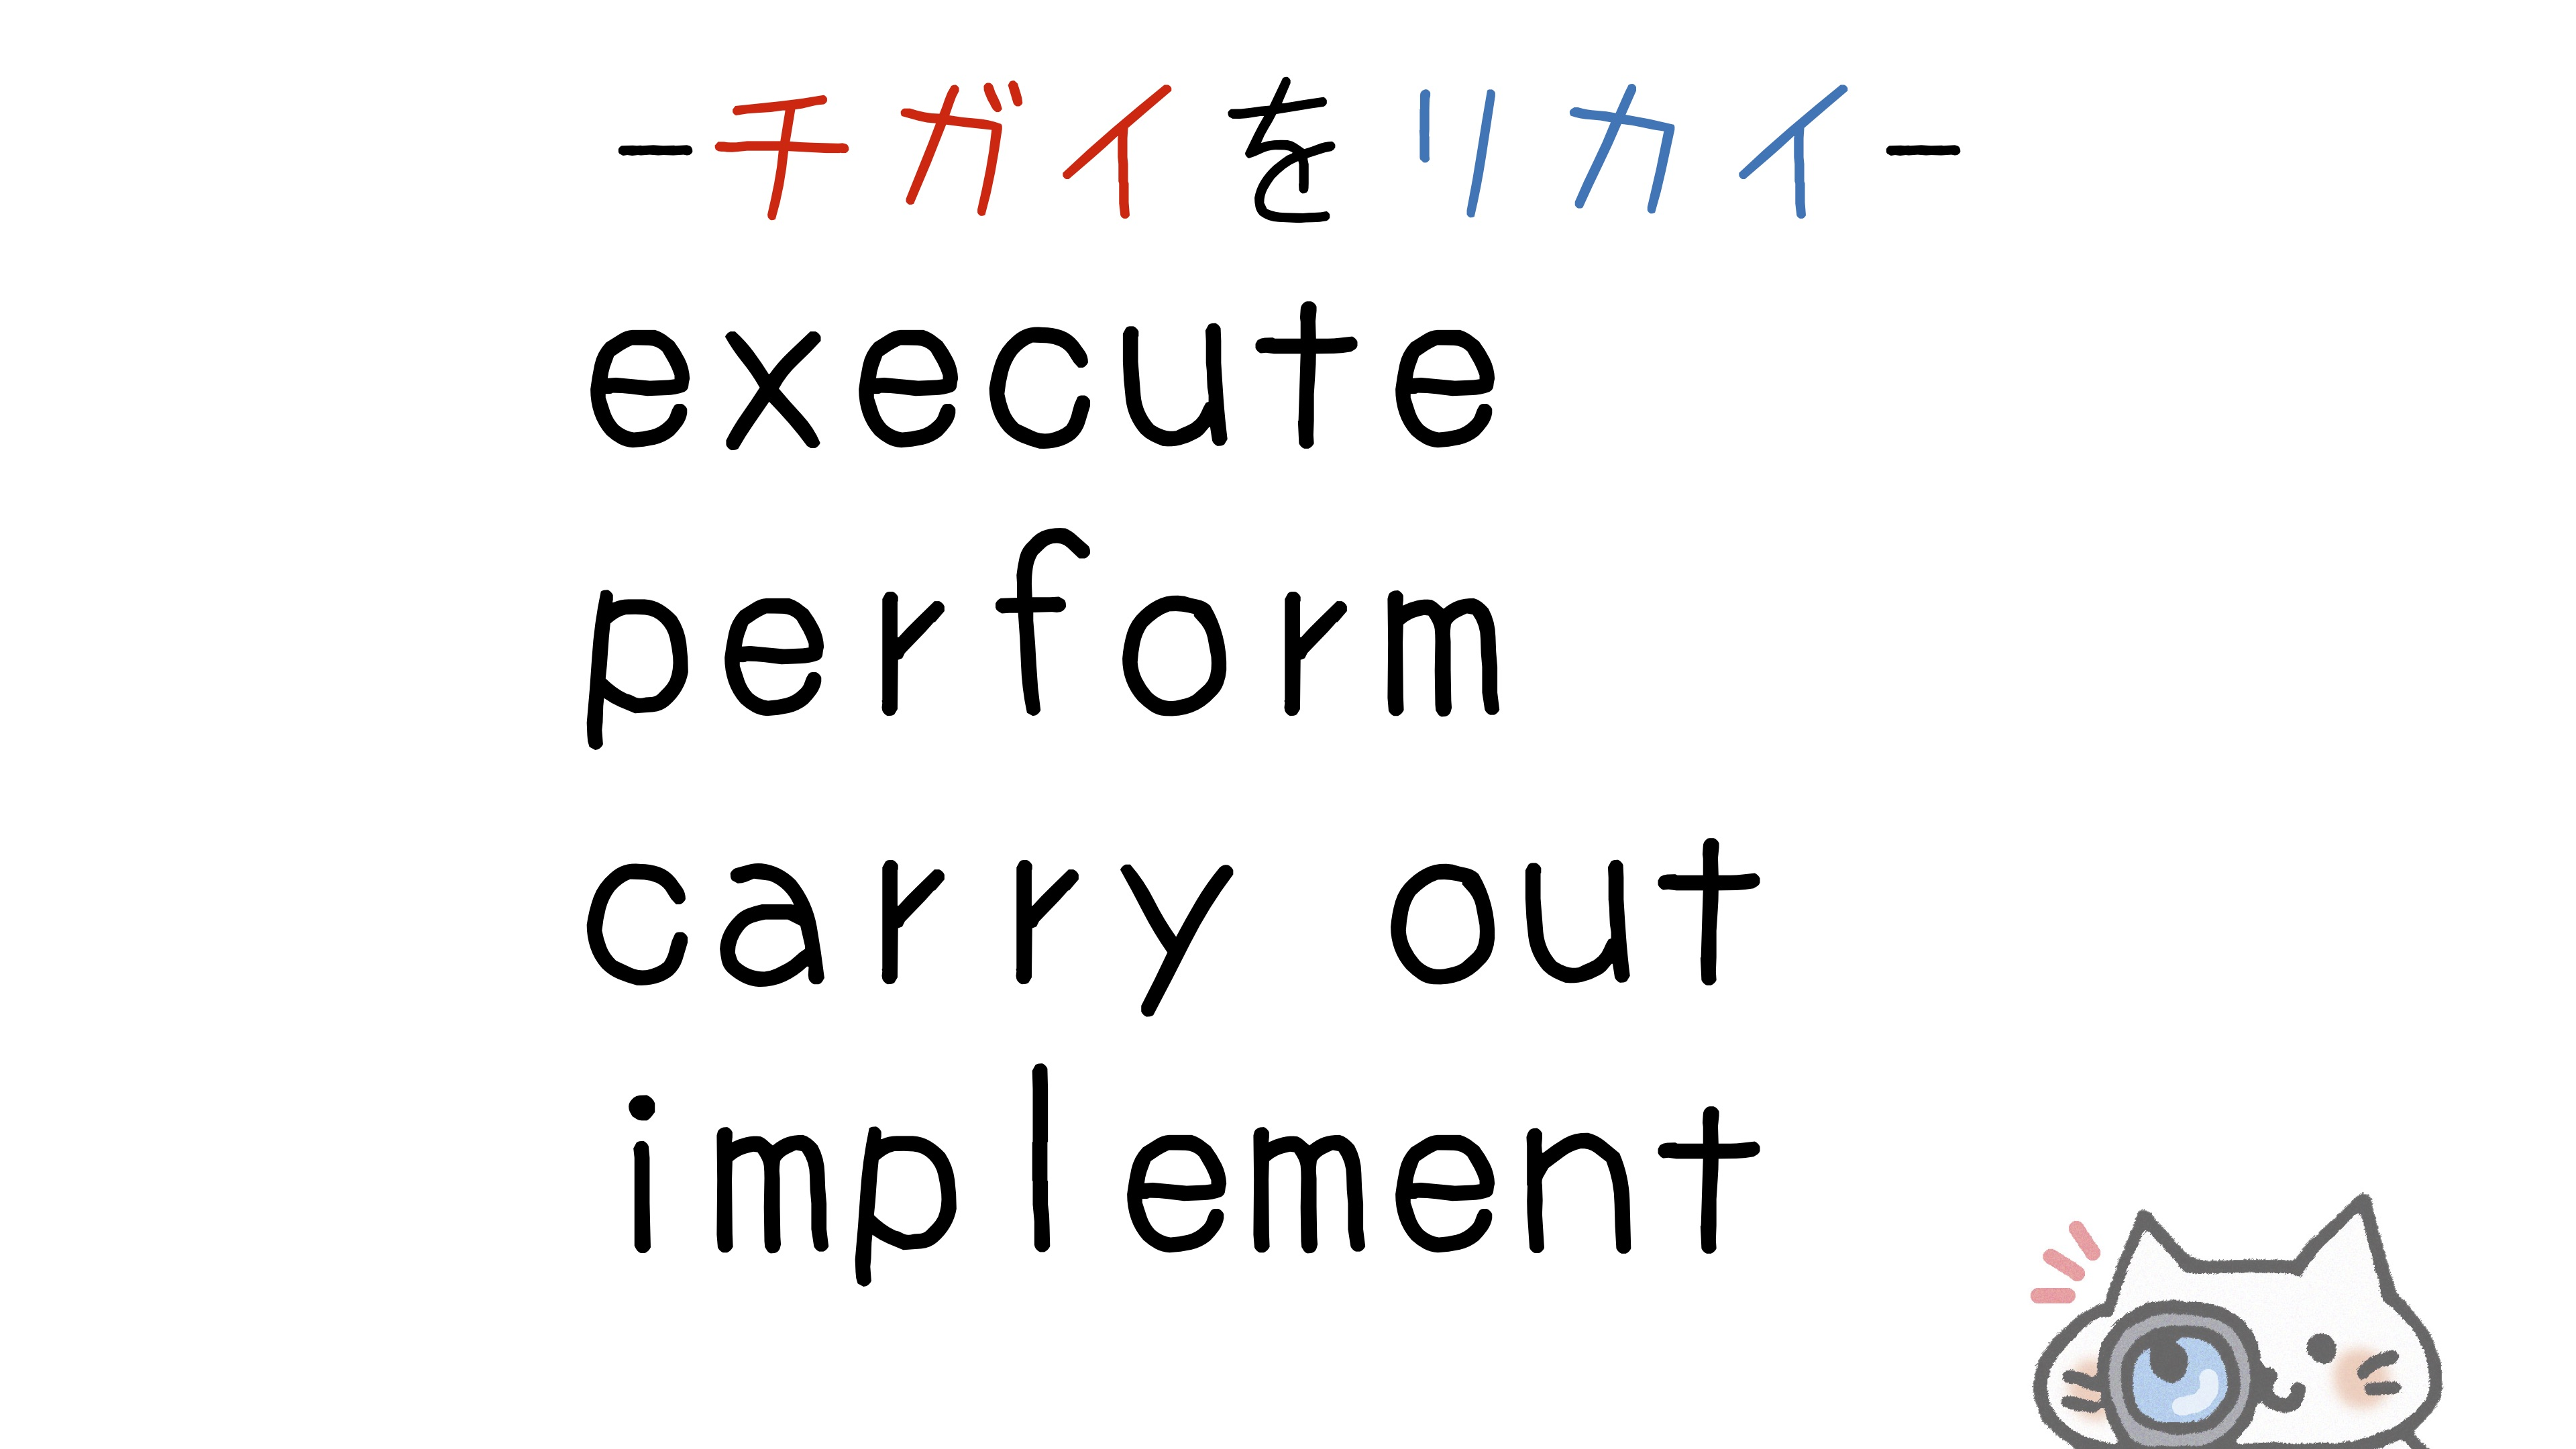 execute-perform-carry-out-implement違い